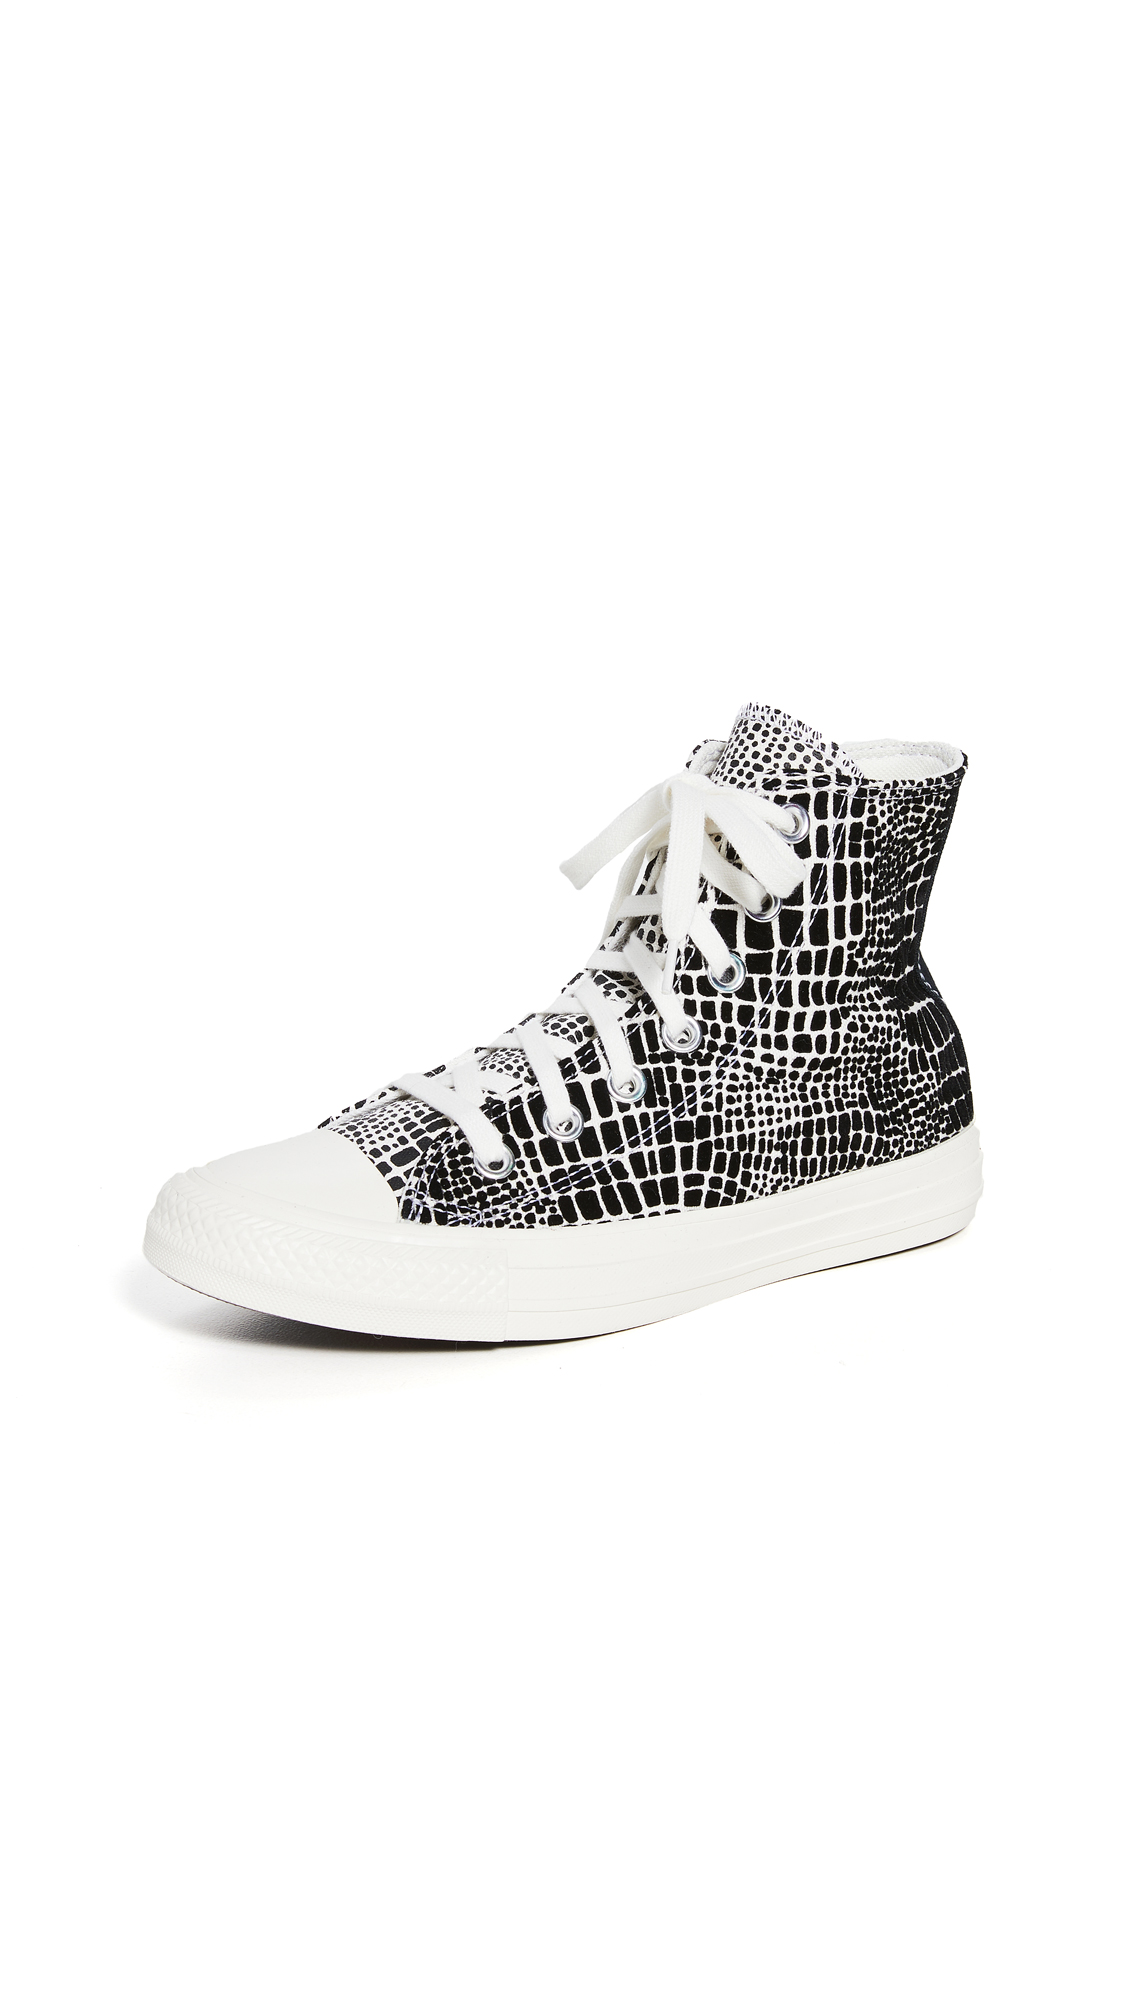 CONVERSE CHUCK TAYLOR ALL STAR HIGH TOP DIGITAL DAZE SNEAKERS